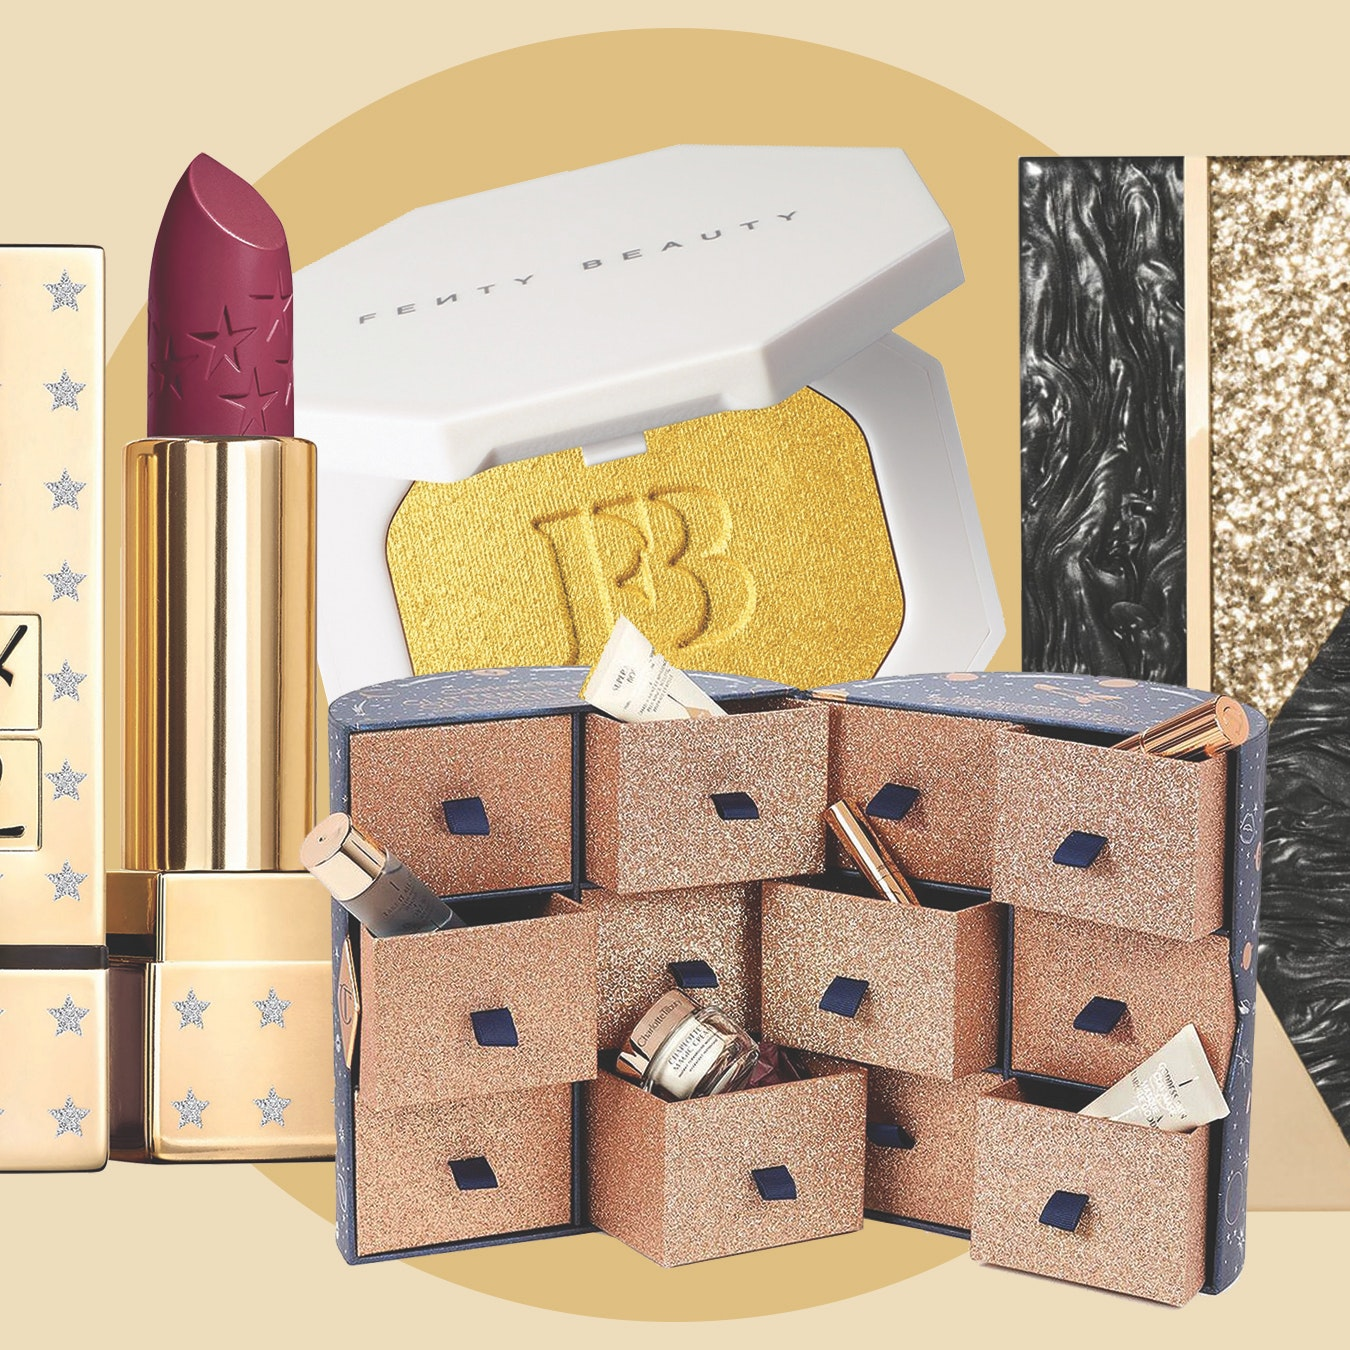 Cross Holiday Beauty Shopping Off Your List With These Editor-Approved Gifts